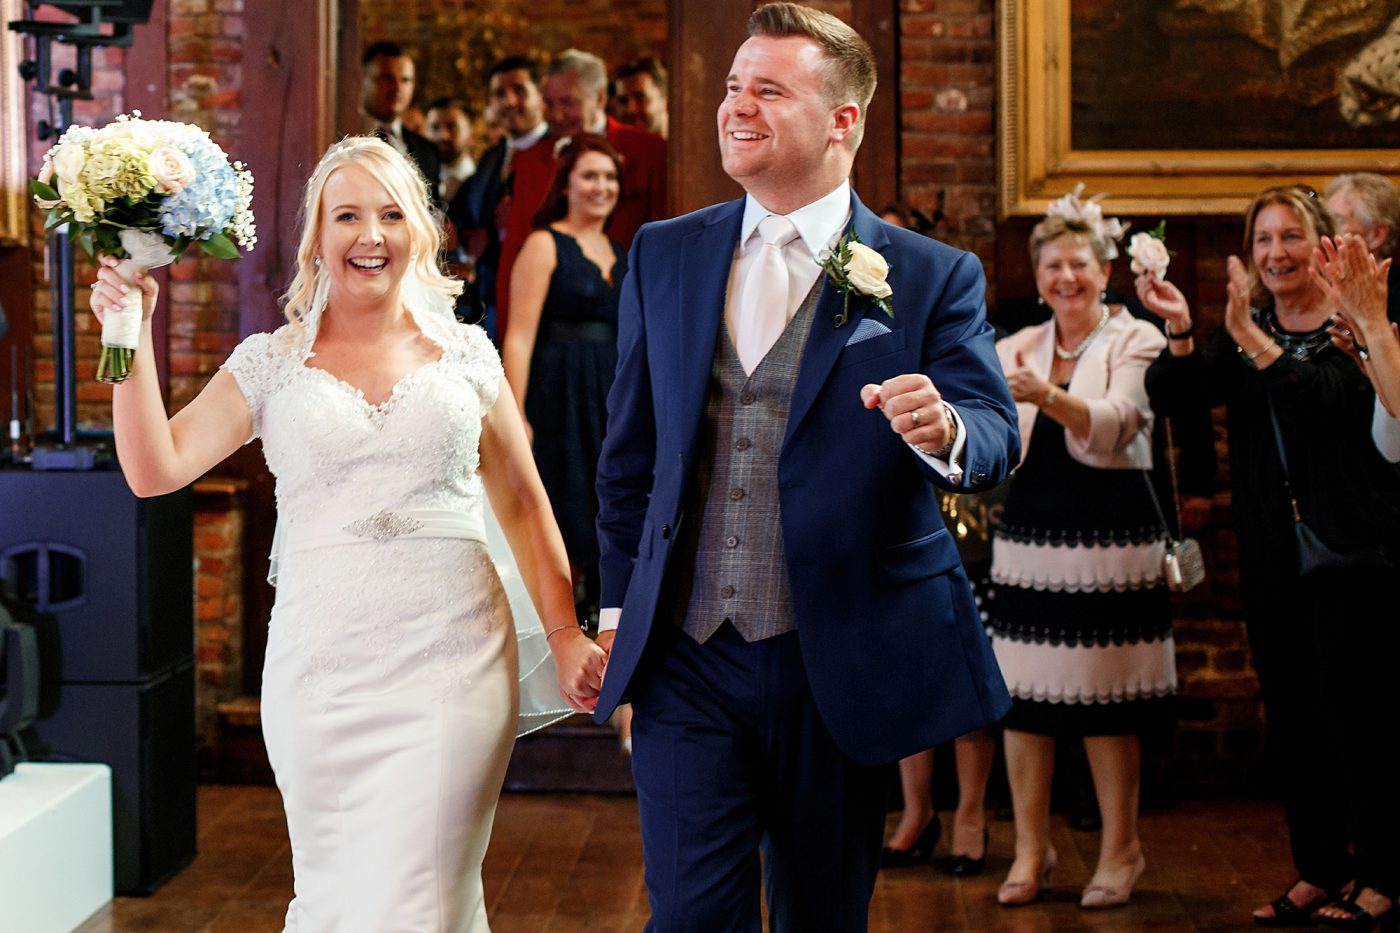 bride and groom dance into the reception room